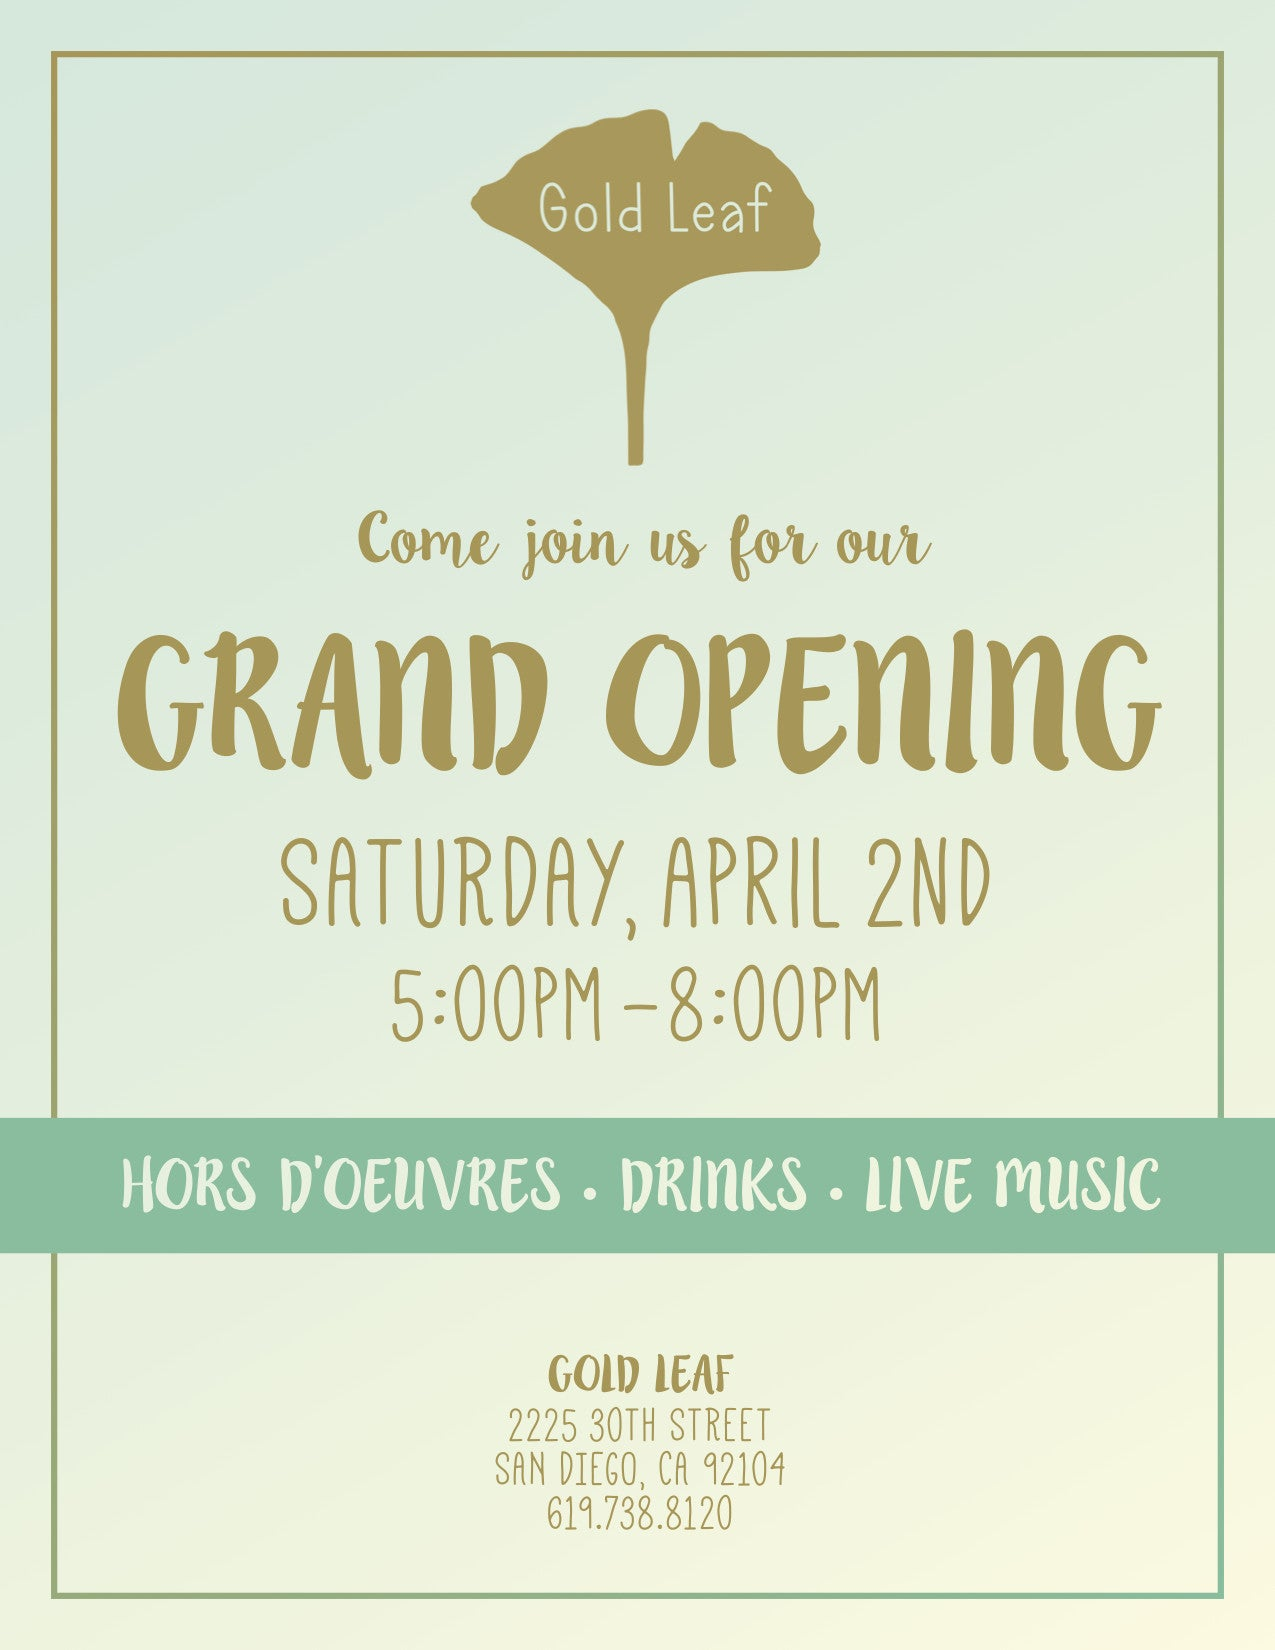 Grand Opening Saturday, April 2nd